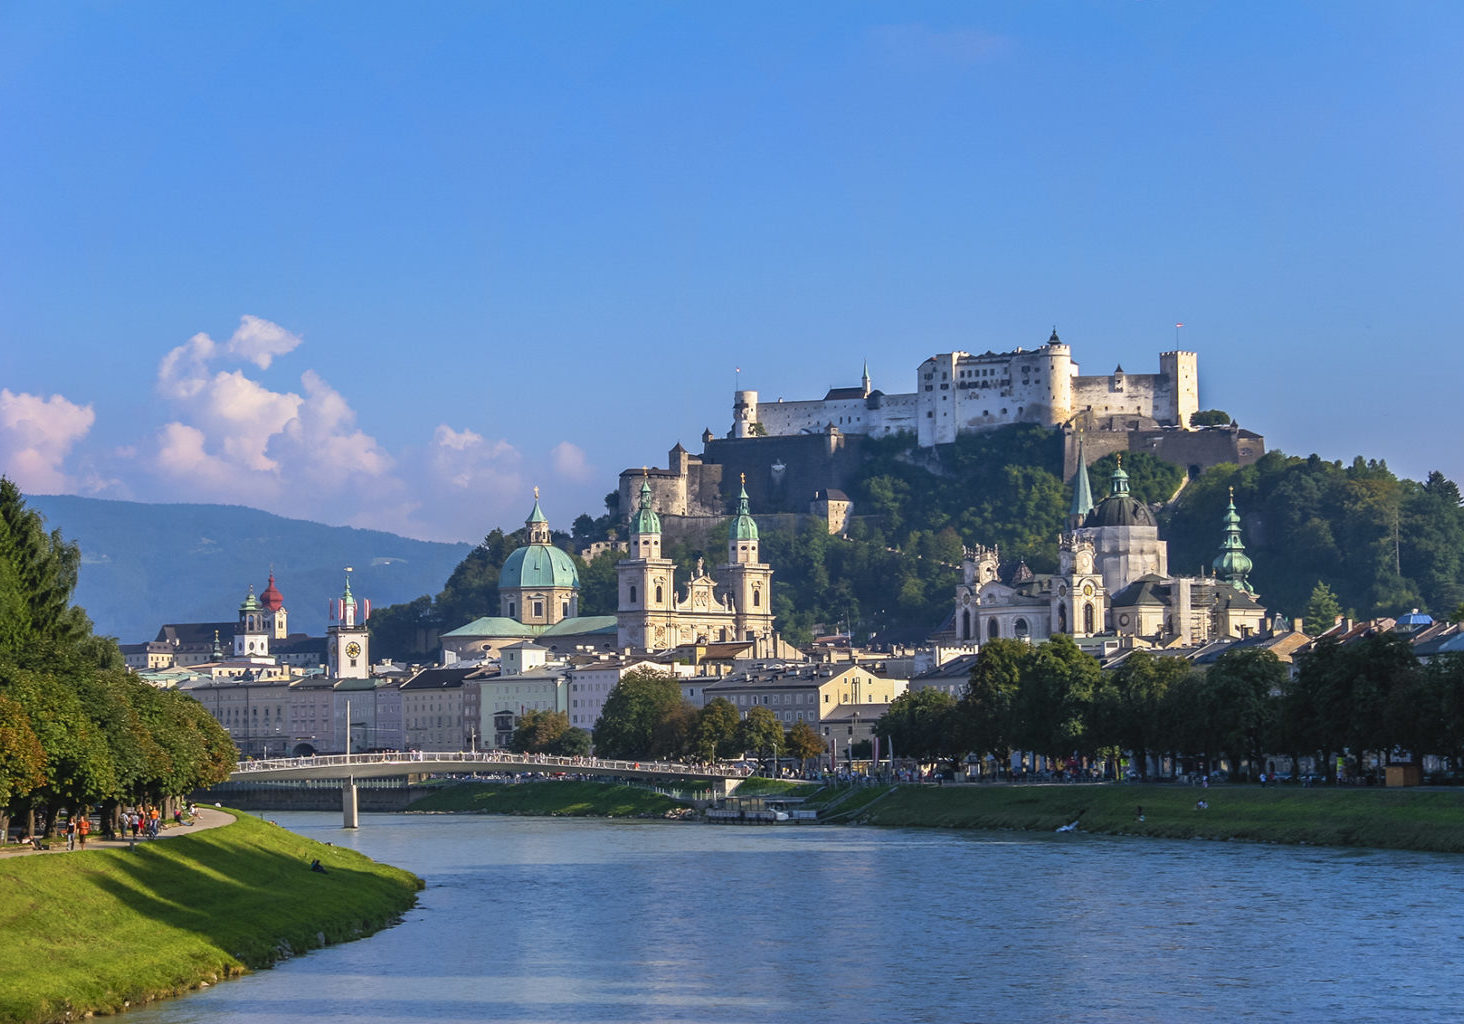 Salzburg in summer seen from one of the bridges on River Salzach. On the top of the rocky hill stands the imposing Hohensalzburg Fortress, built in 1077. The city is renowned for its baroque architecture and has been listed in UNESCO World Heritage Site in 1996. Salzburg, Austria.